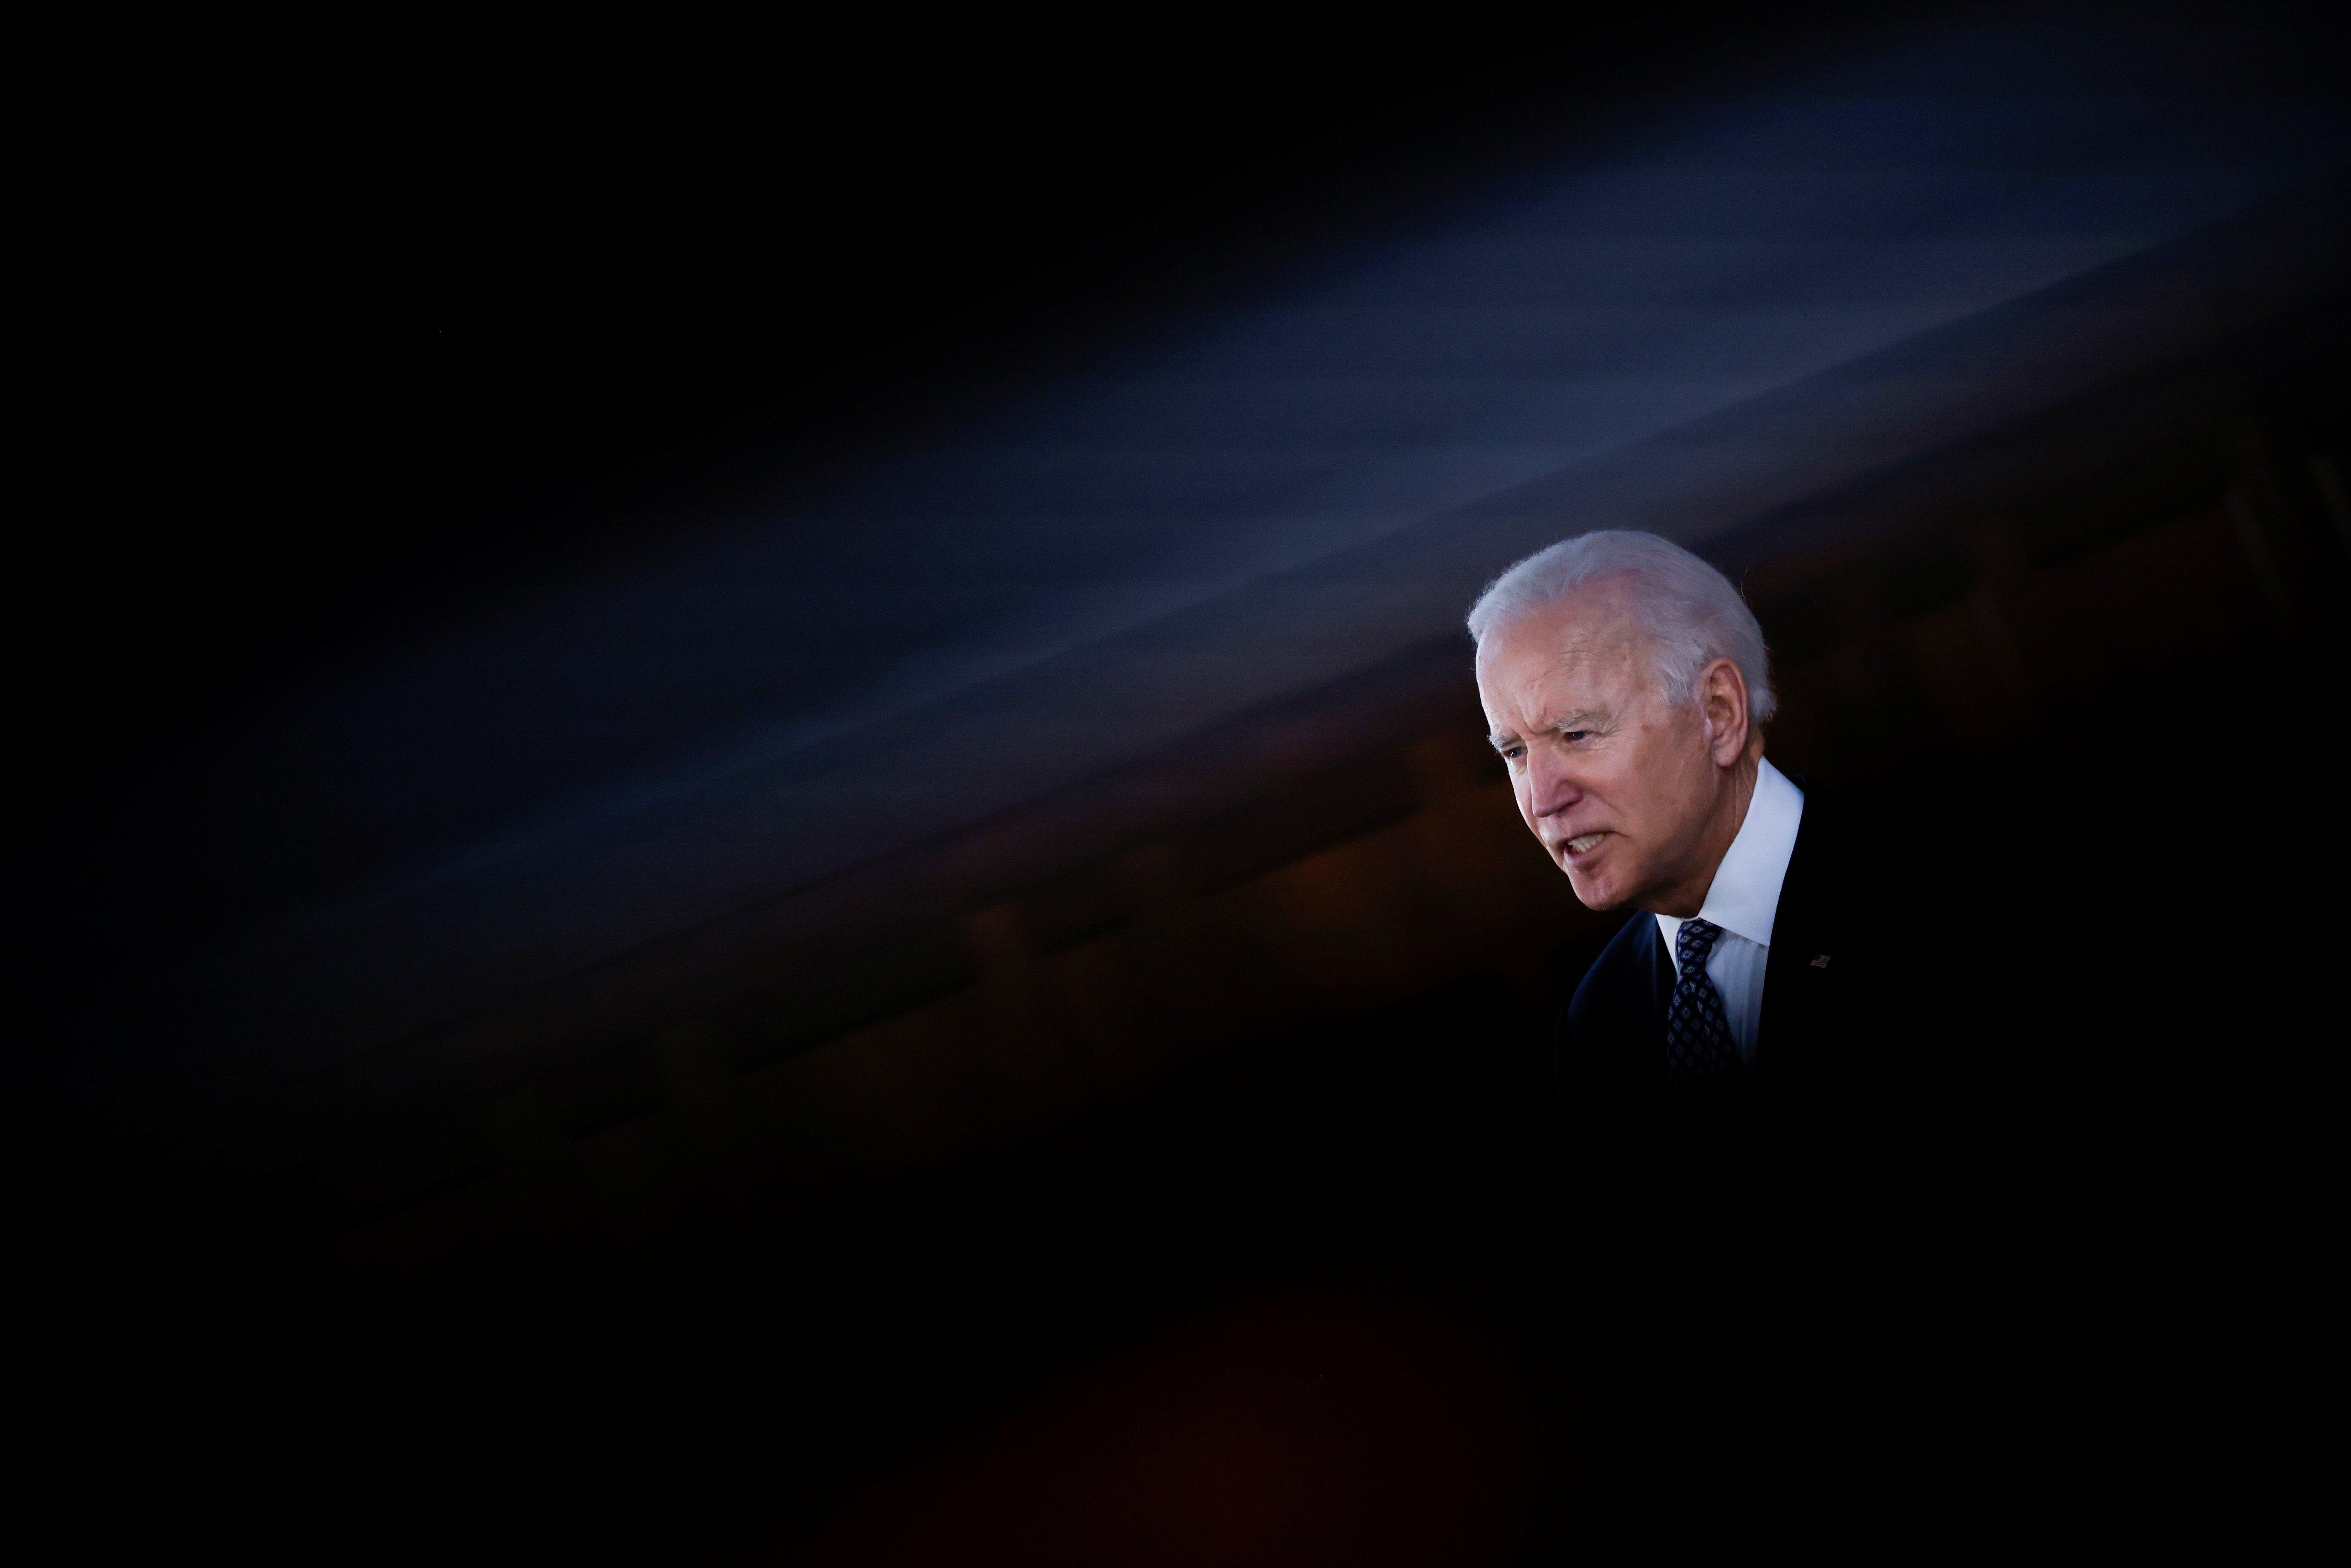 U.S. President Joe Biden delivers remarks after a meeting with Asian-American leaders to discuss